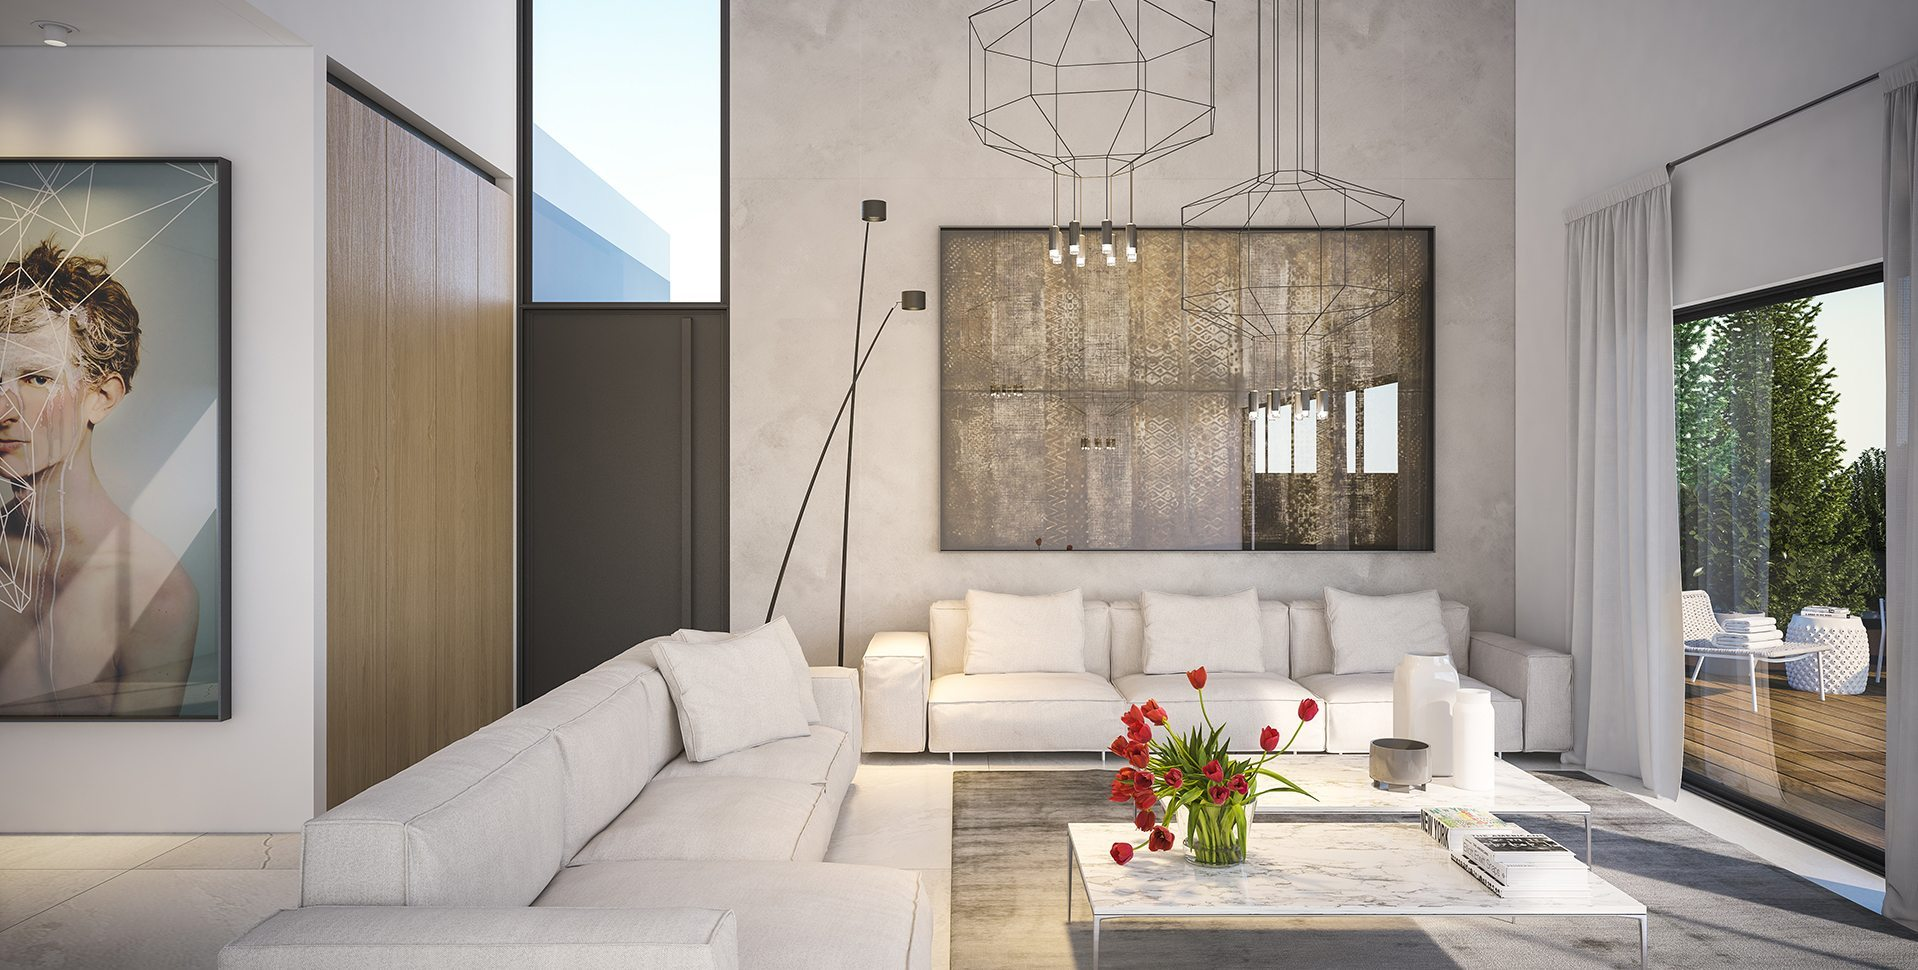 Architectural Visualization: Living room, Hardof Project by El-Yam